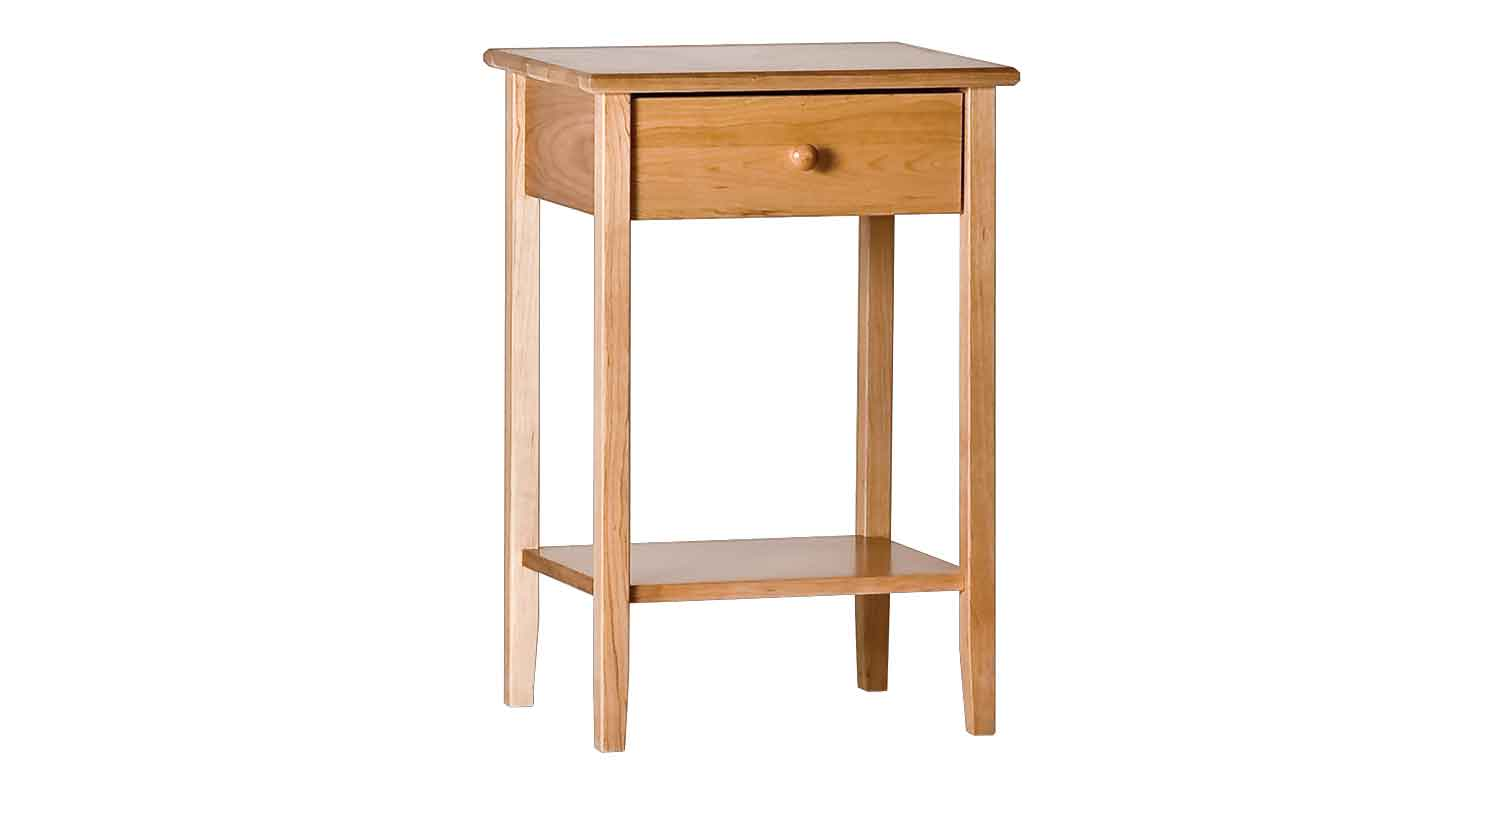 white bench threshold and kijiji target antique tables cabinet storage accent for furniture ott room gold round outdoor living tall table modern decorative glass full size cream